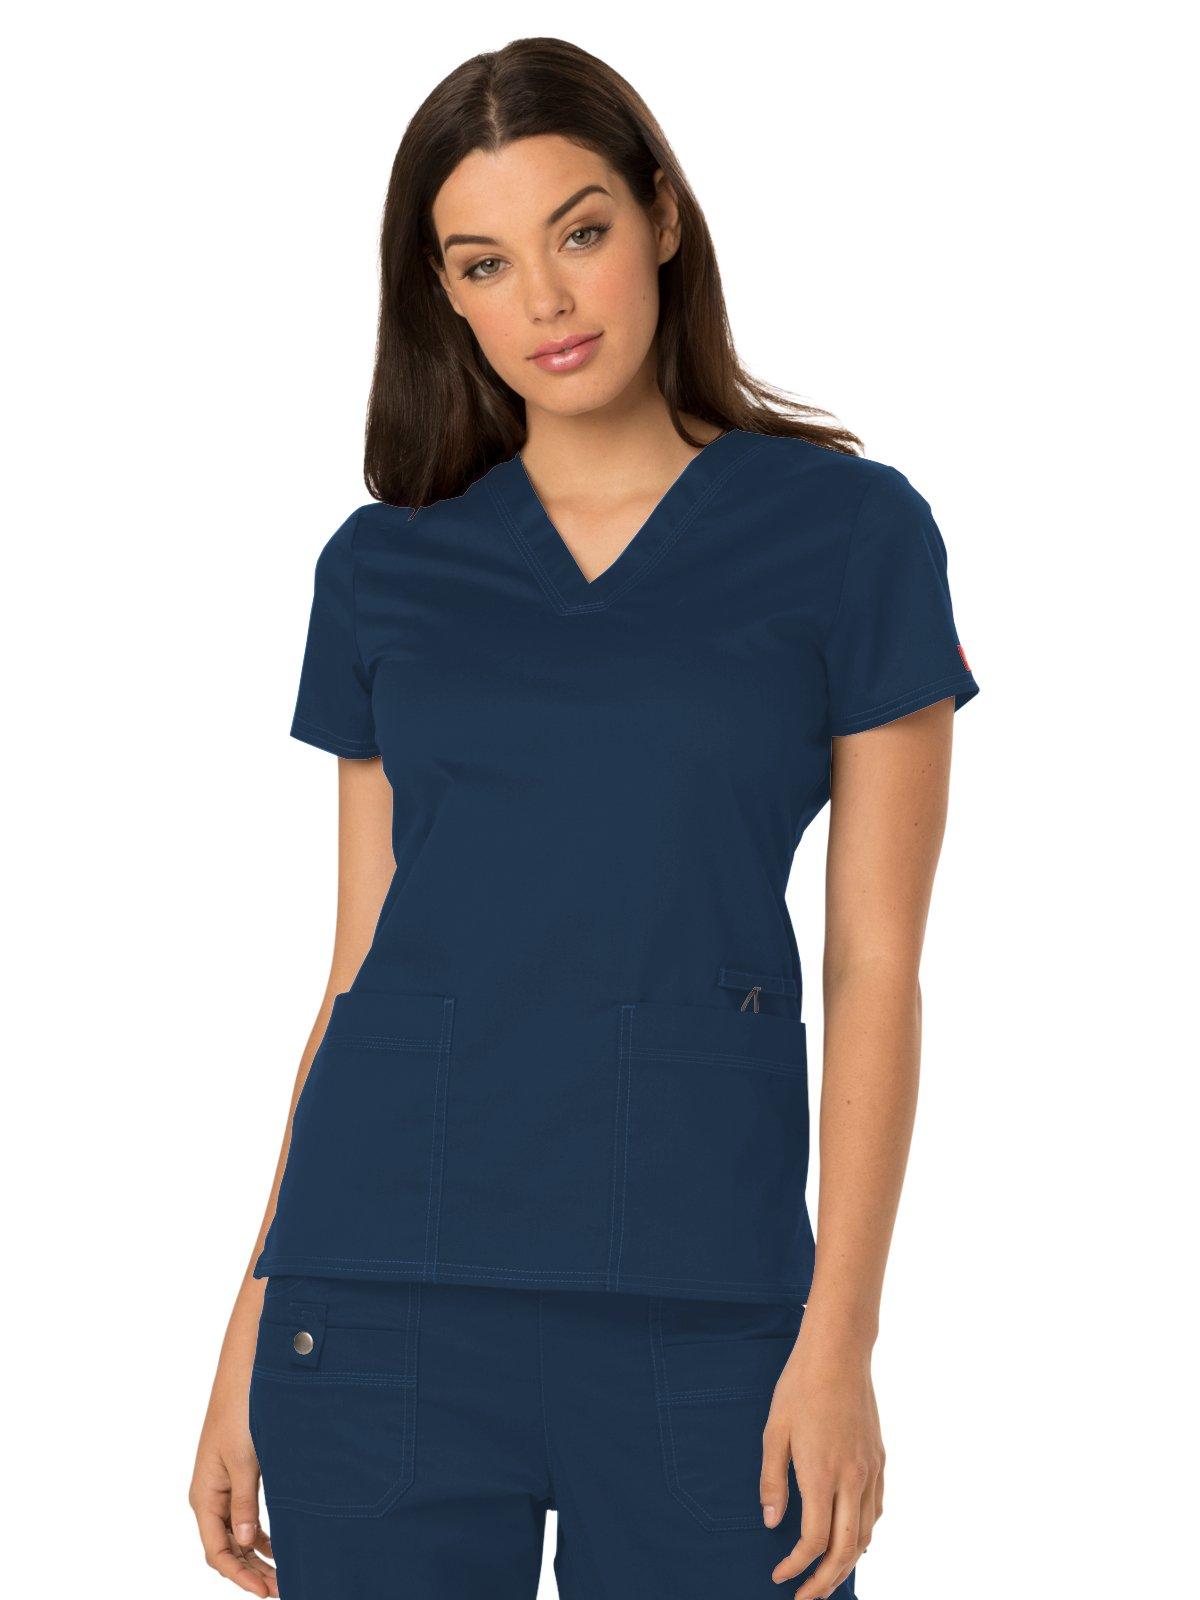 Dickies Gen Flex by Women's V-Neck Solid Scrub Top Small Navy